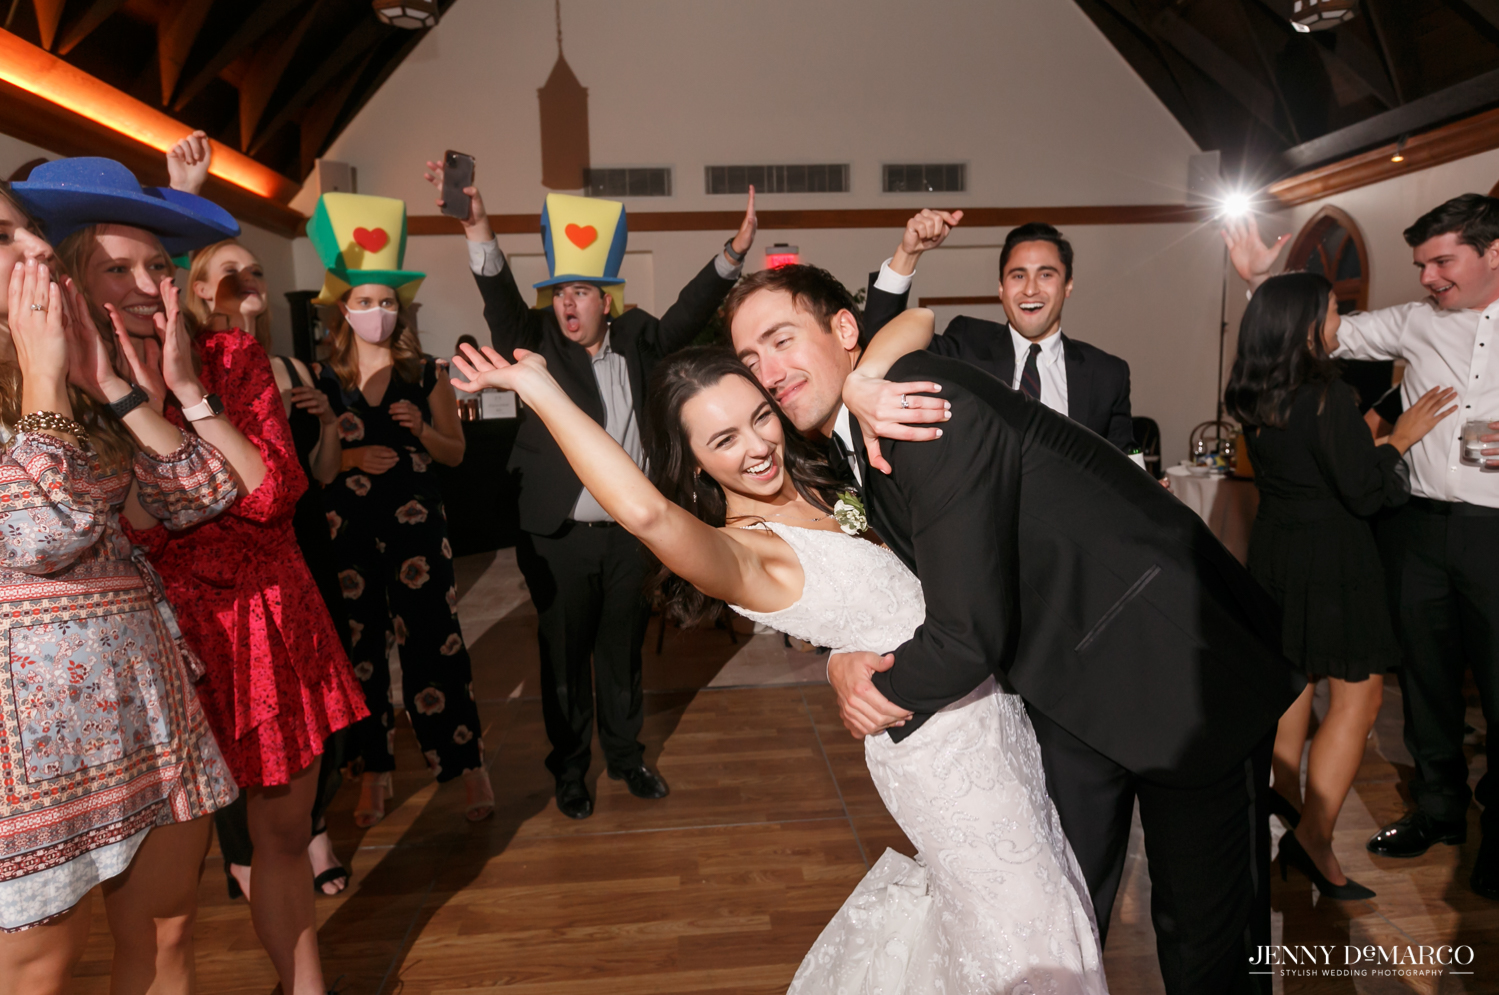 groom dipping his bride as she throw her hands up in celebration